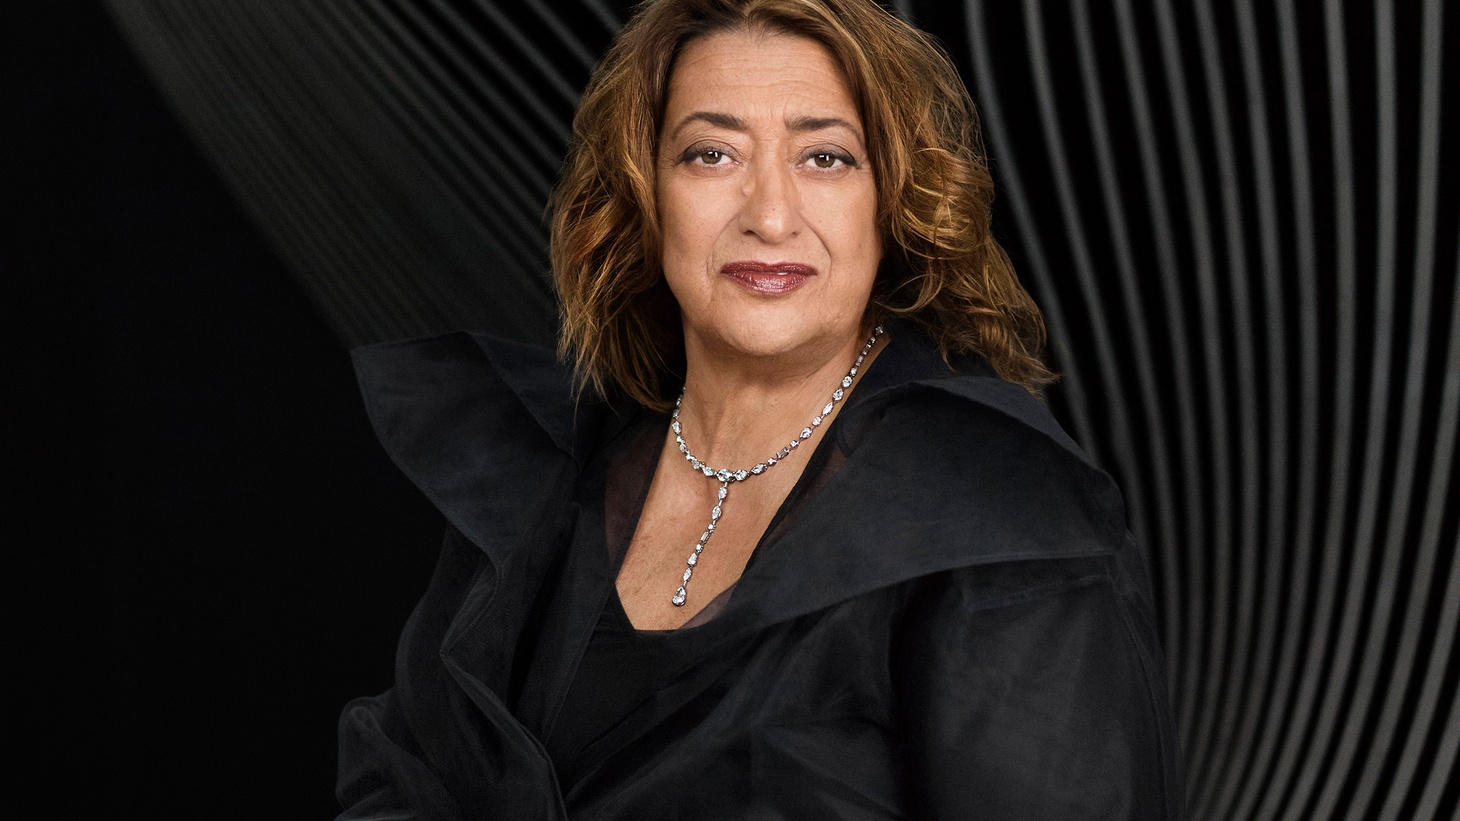 We pay tribute to a titan of architecture, Zaha Hadid, who died in Miami last week. Writer Geoff Manaugh argues that burglars have a lot to teach architects about buildings. And we remember a time when men wore corsets, padded stockings and used swords as fashion accessories.